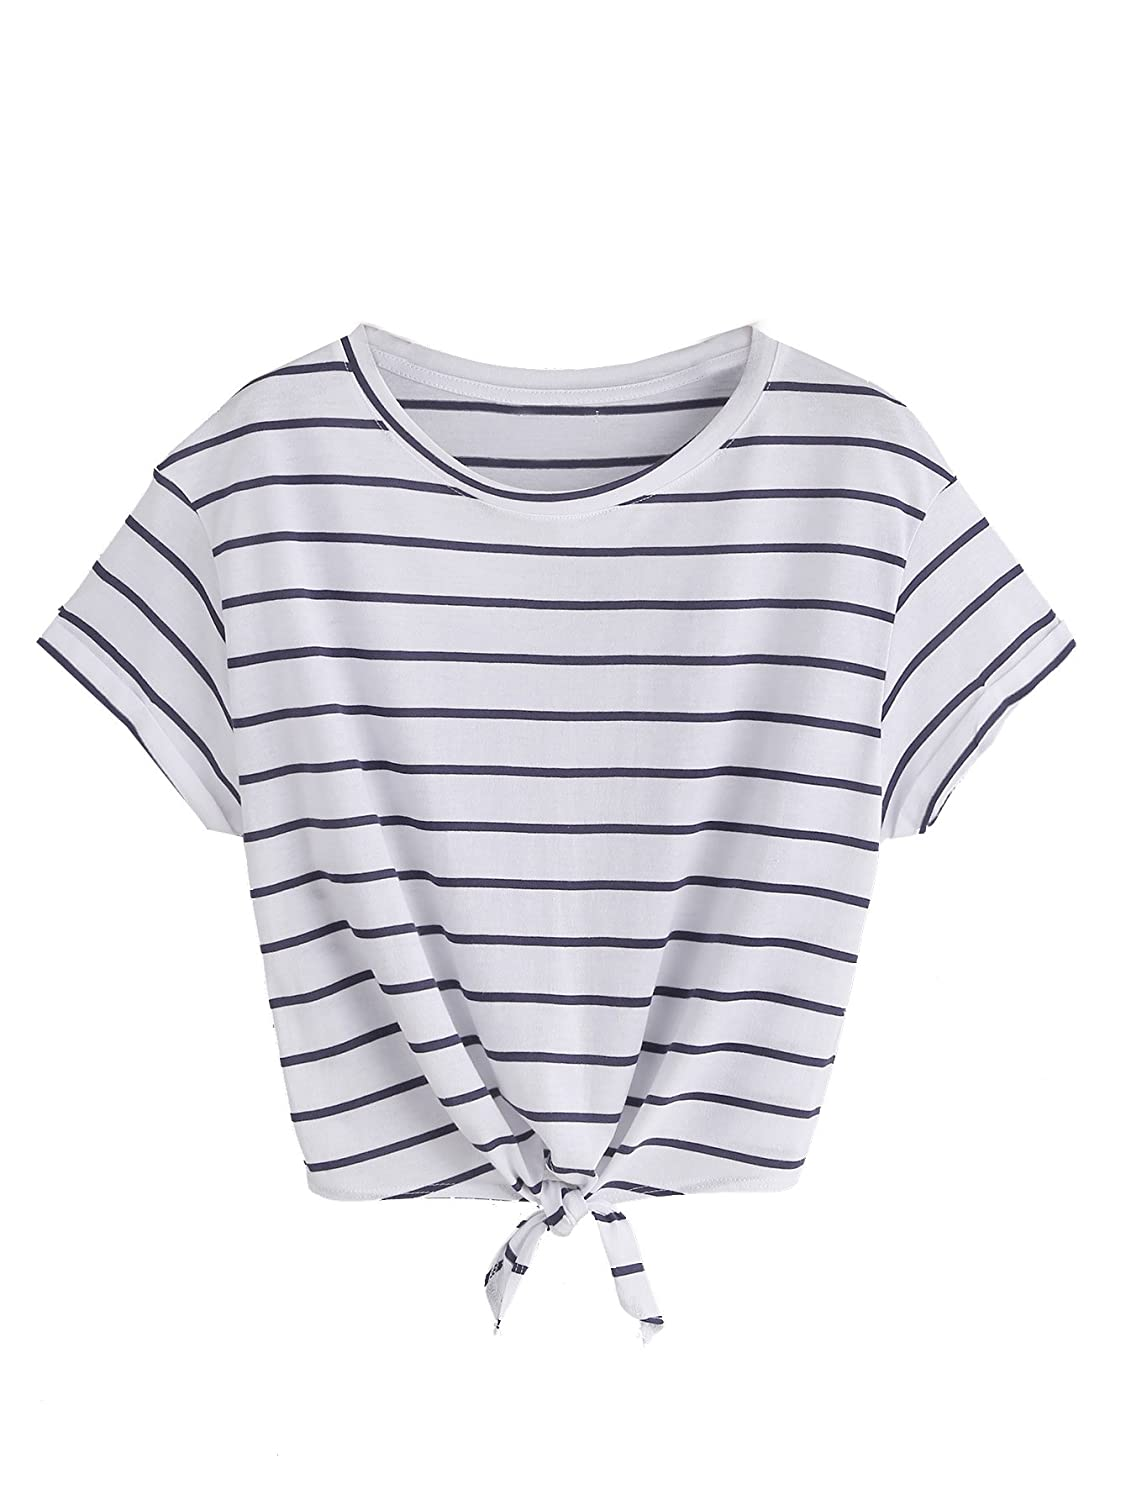 3e1668fc16 Romwe Women's Knot Front Cuffed Sleeve Striped Crop Top Tee T-Shirt at  Amazon Women's Clothing store: